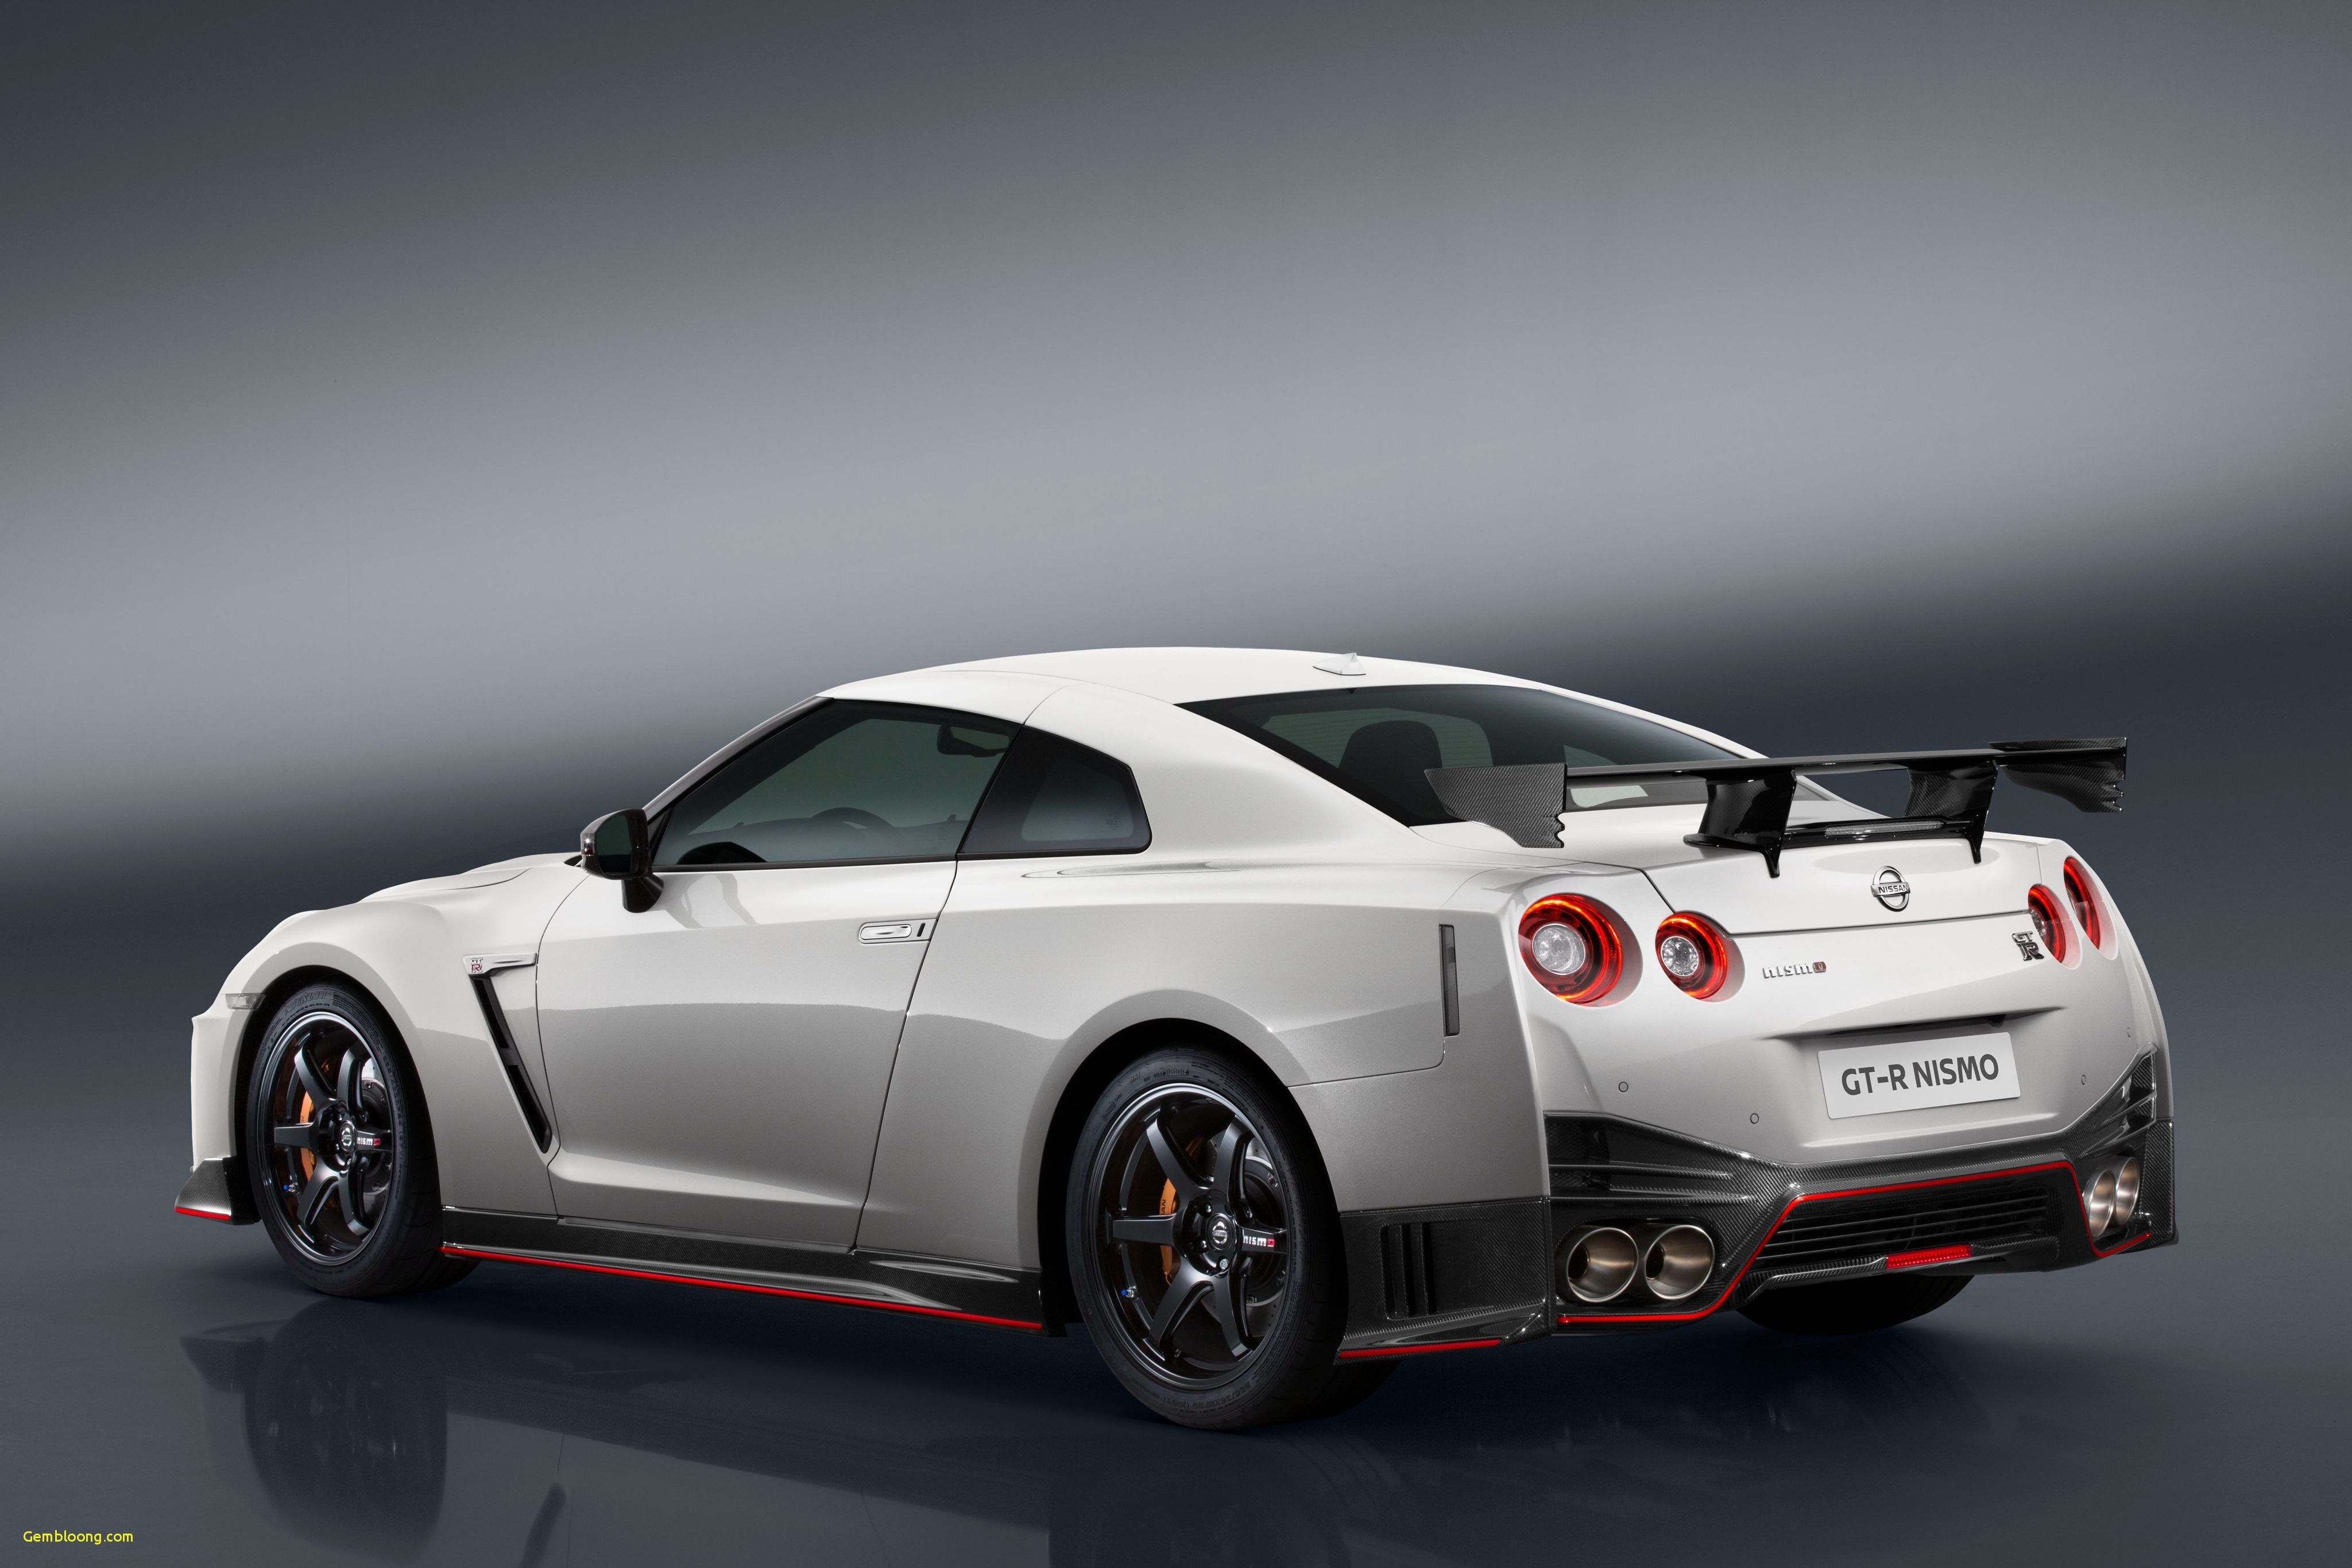 Nissan Gtr 2019 Review Specs And Release Date 2019 Nissan Gtr Nismo Nissan Gtr Nissan Gtr Nismo Nissan Gt R